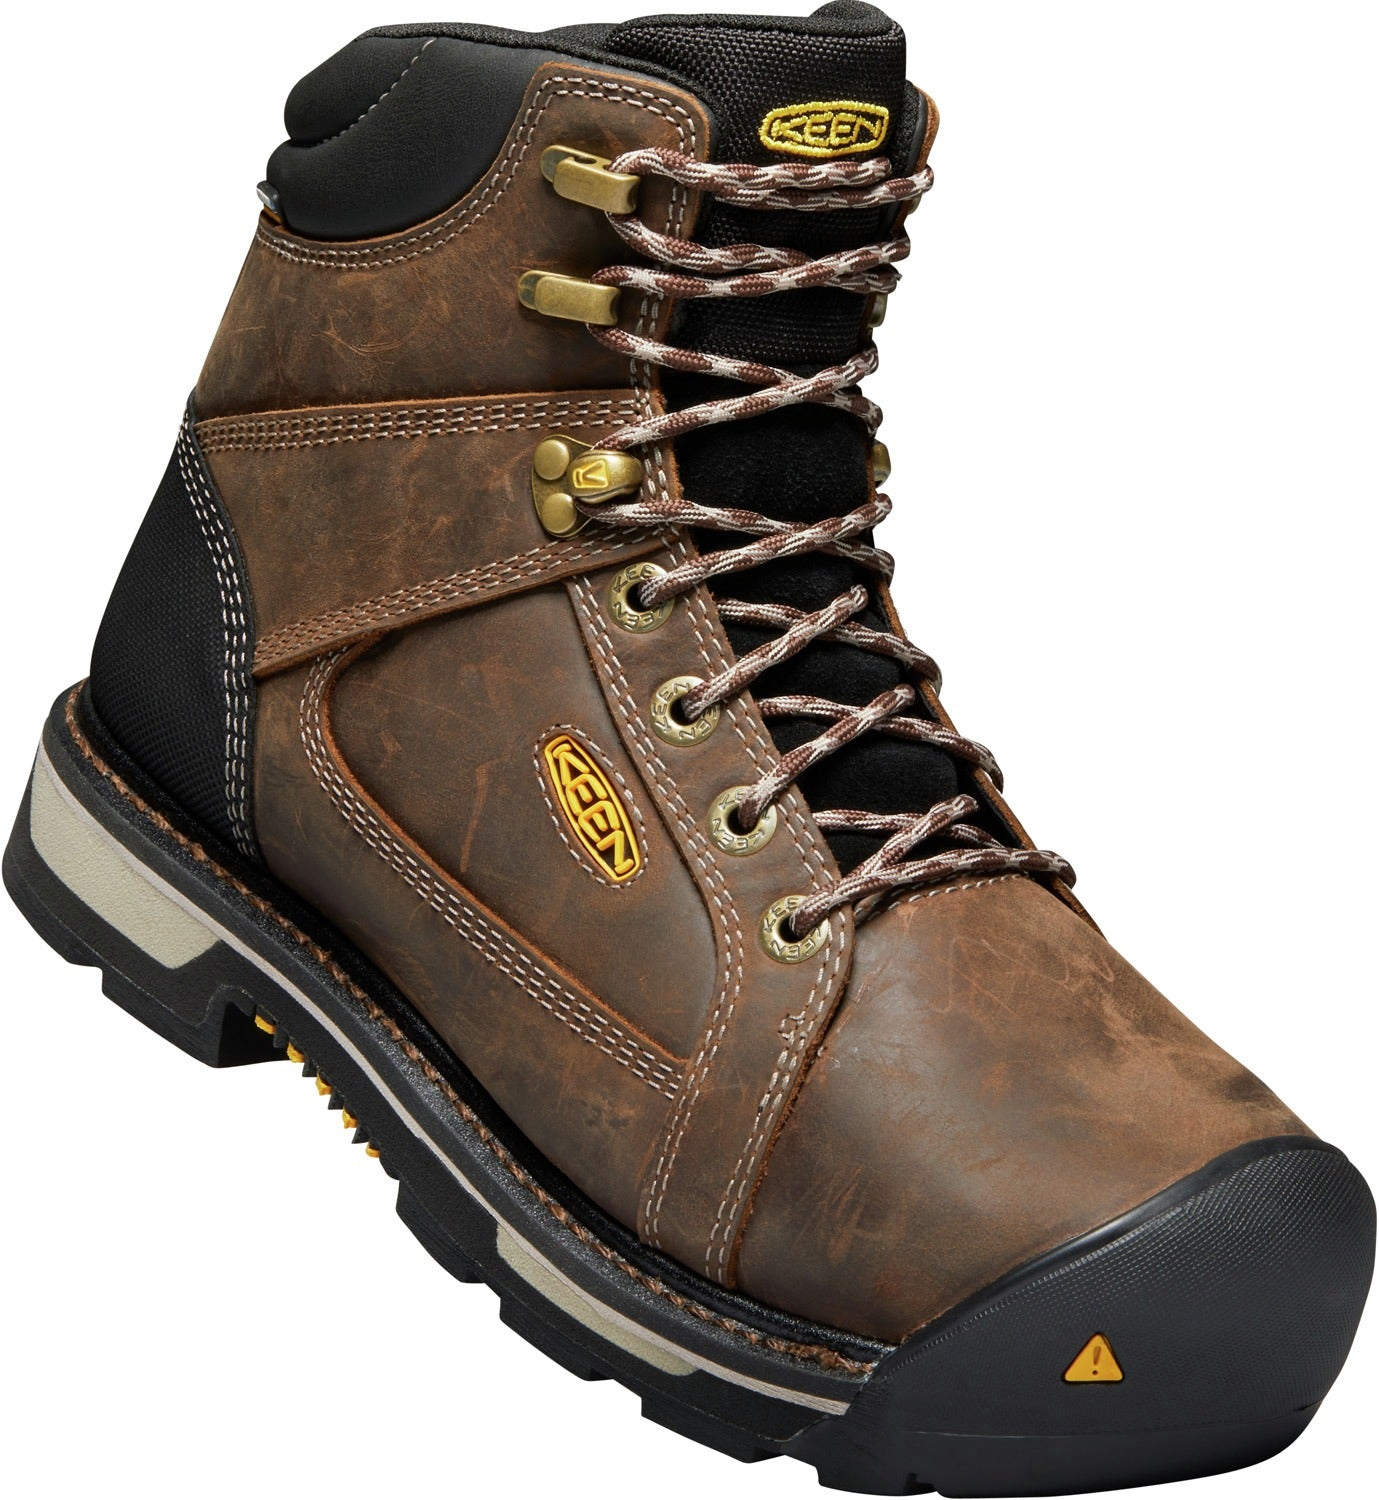 Oakland Waterproof Steel Toe Boot - Chestnut Brown / Black